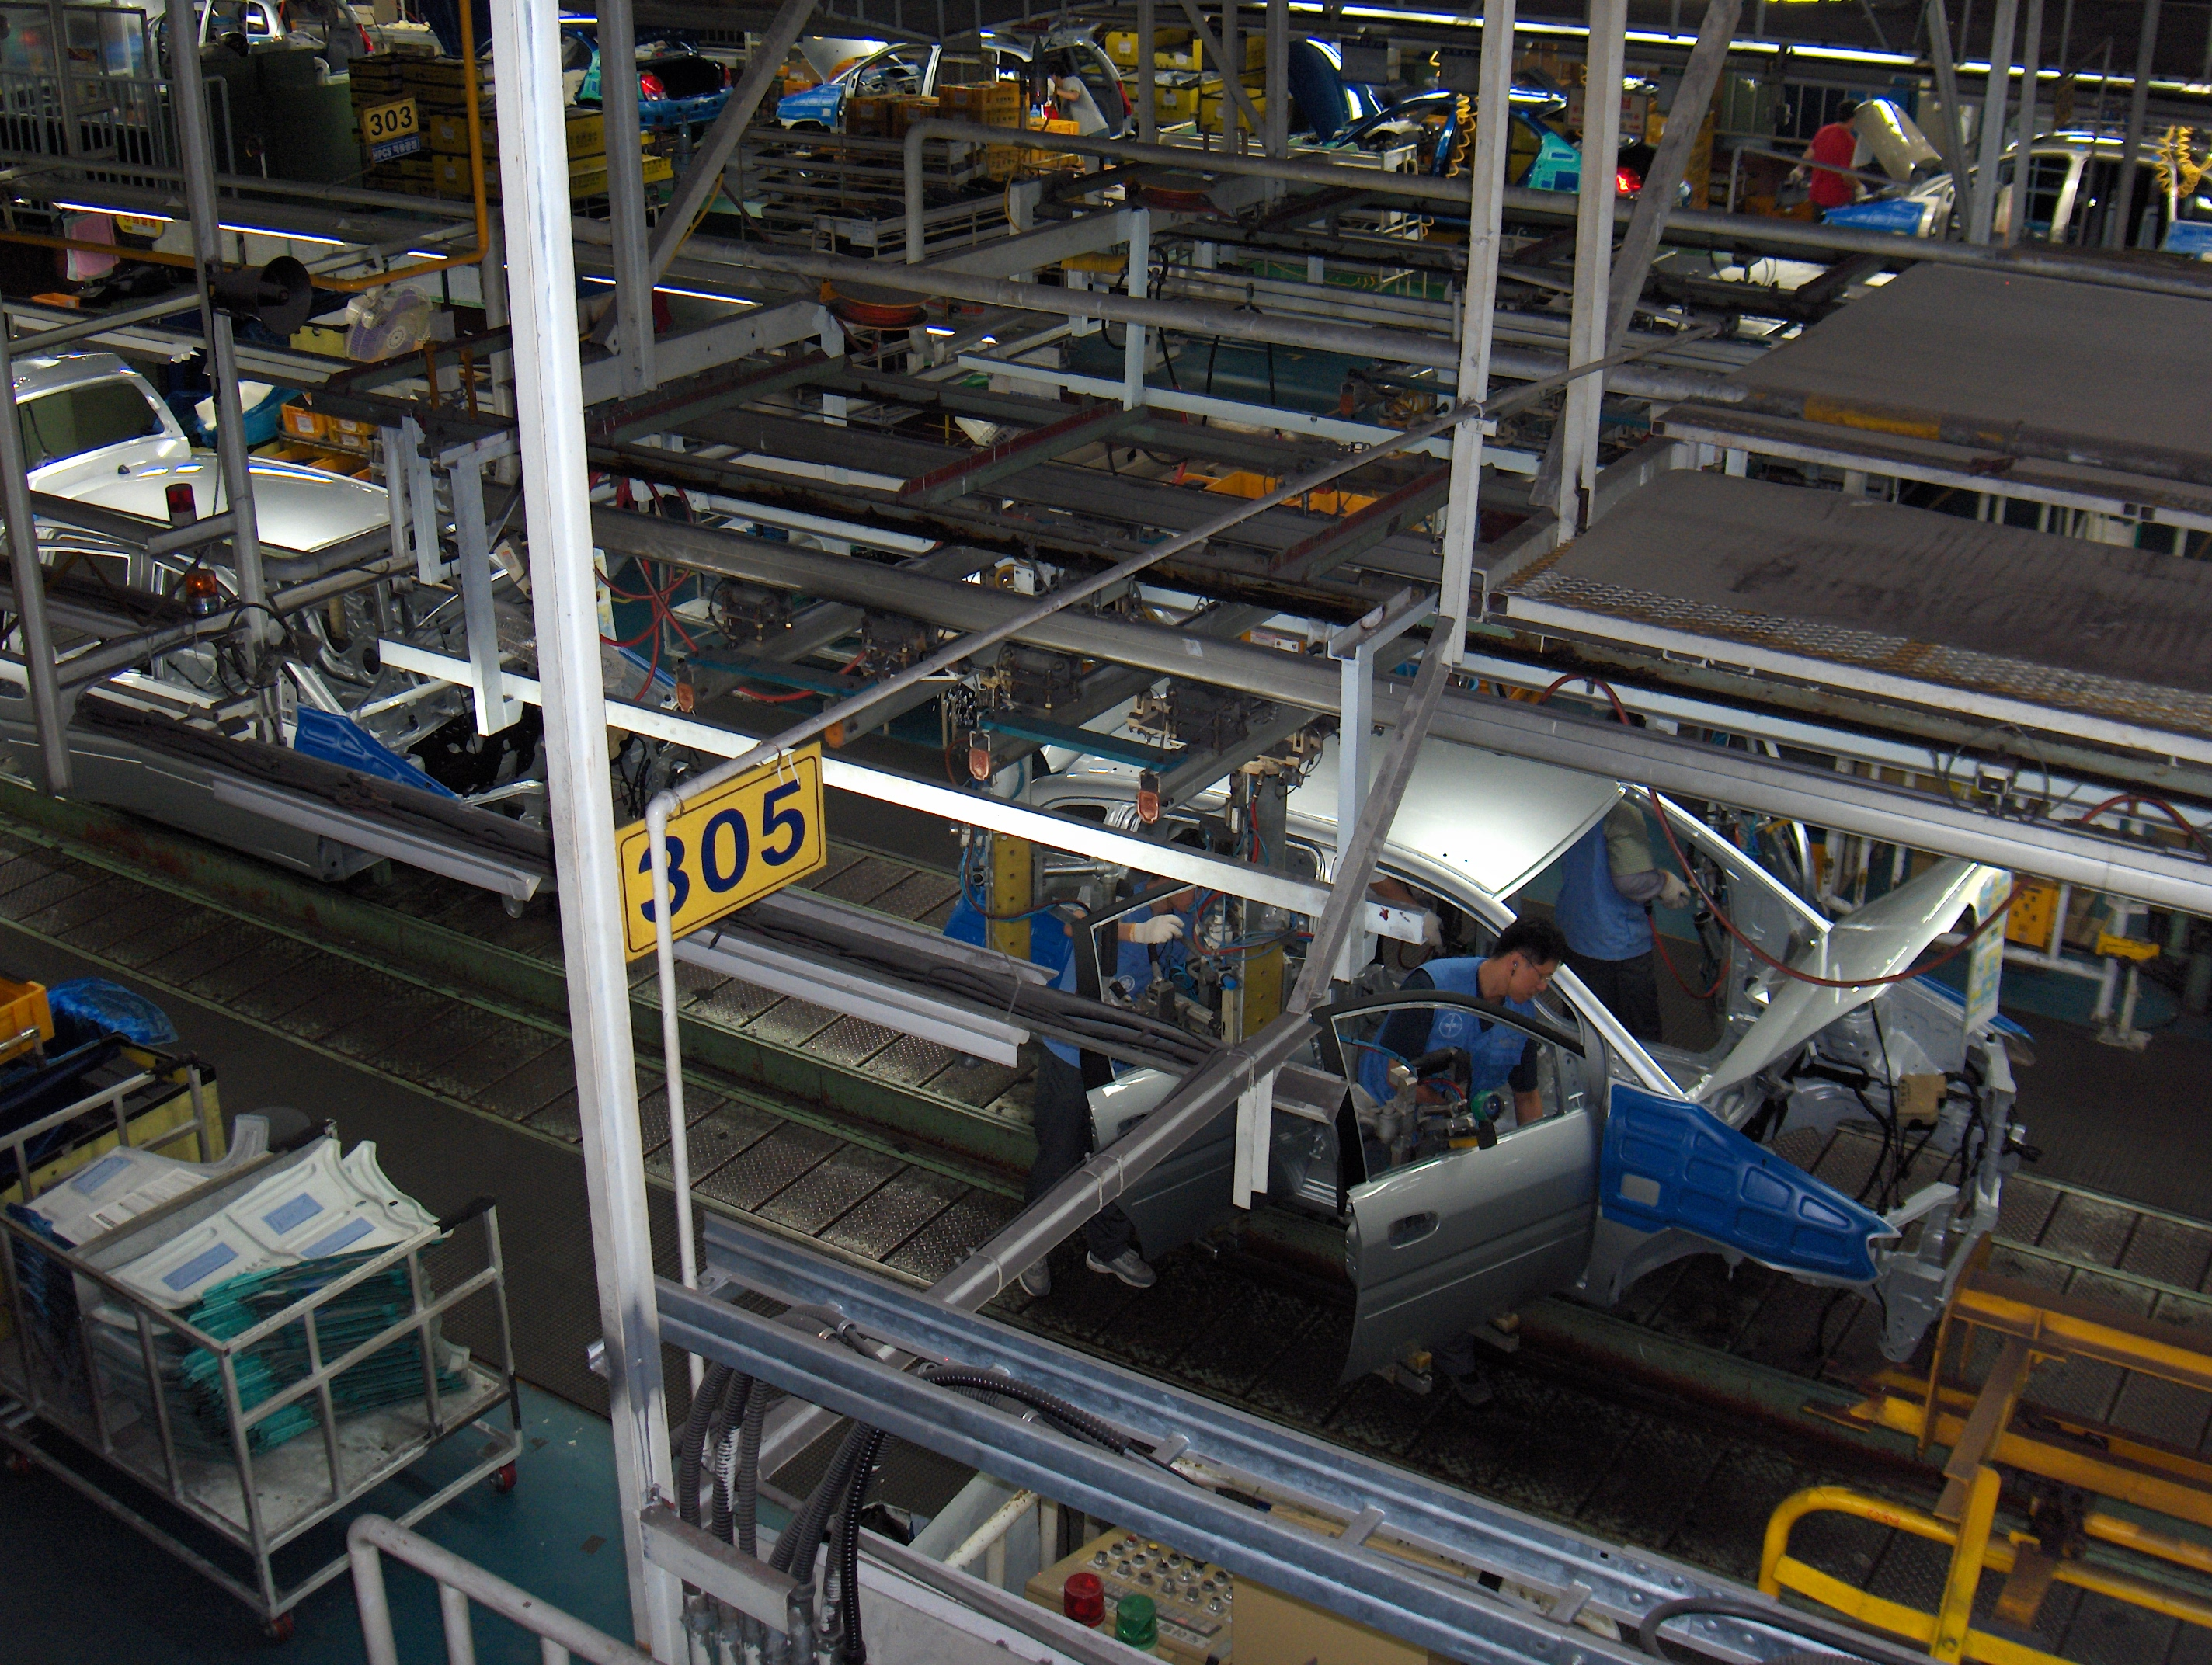 File:Hyundai car assembly line.jpg - Wikimedia Commons